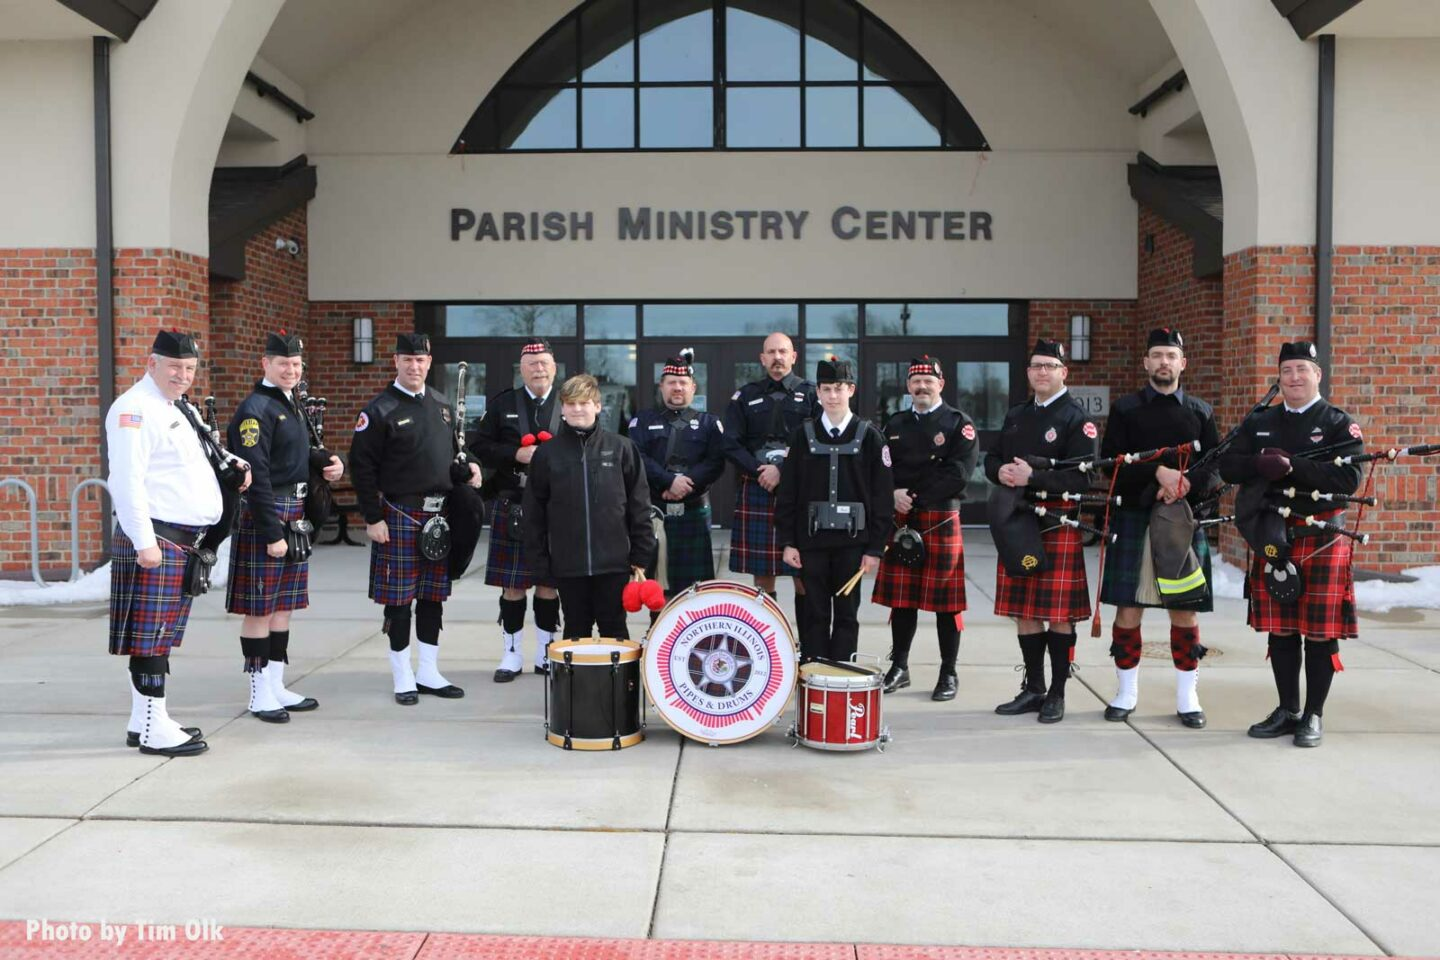 Pipes and drums band at Al Schlick funeral